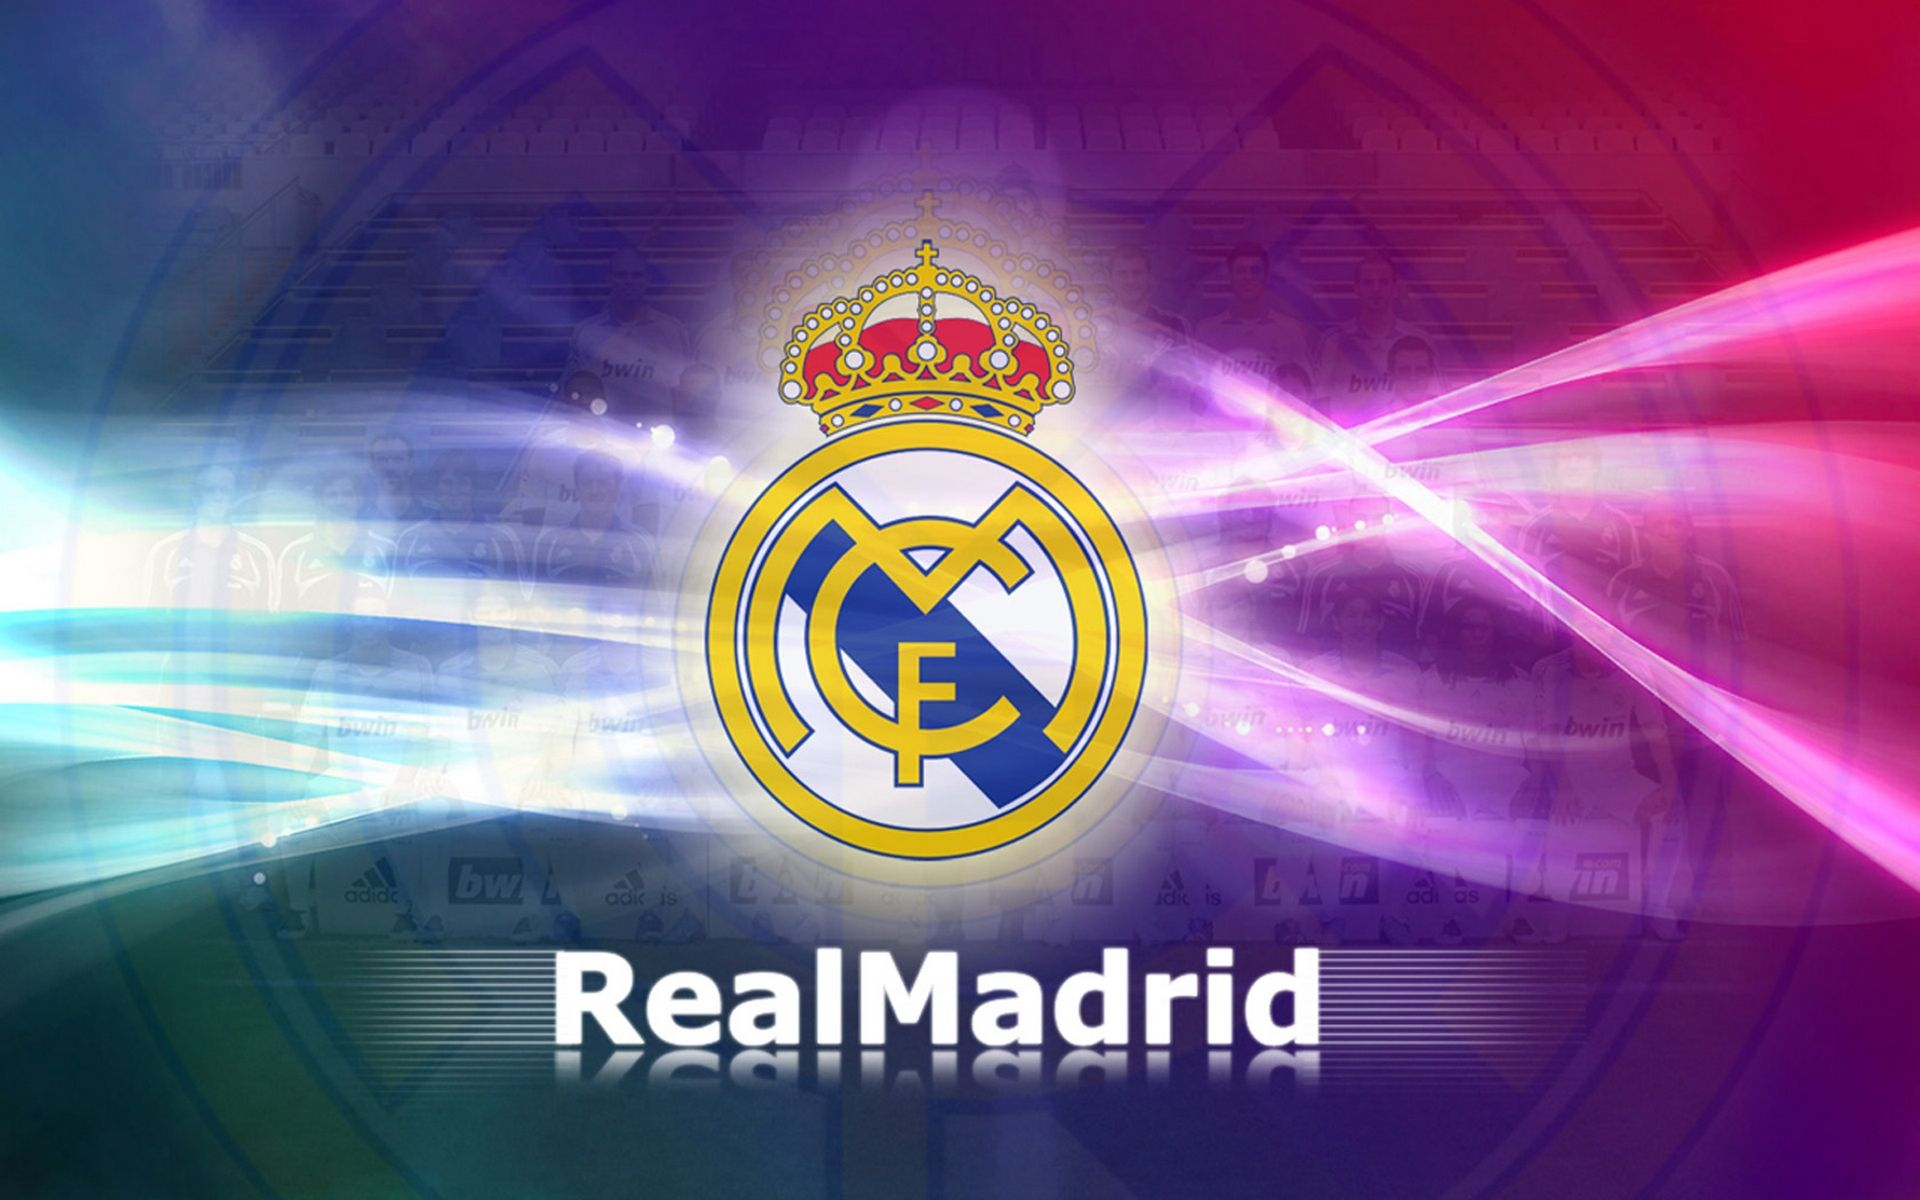 real madrid uefa champions league best wallpaper hd real madrid logo real madrid wallpapers real madrid football club real madrid uefa champions league